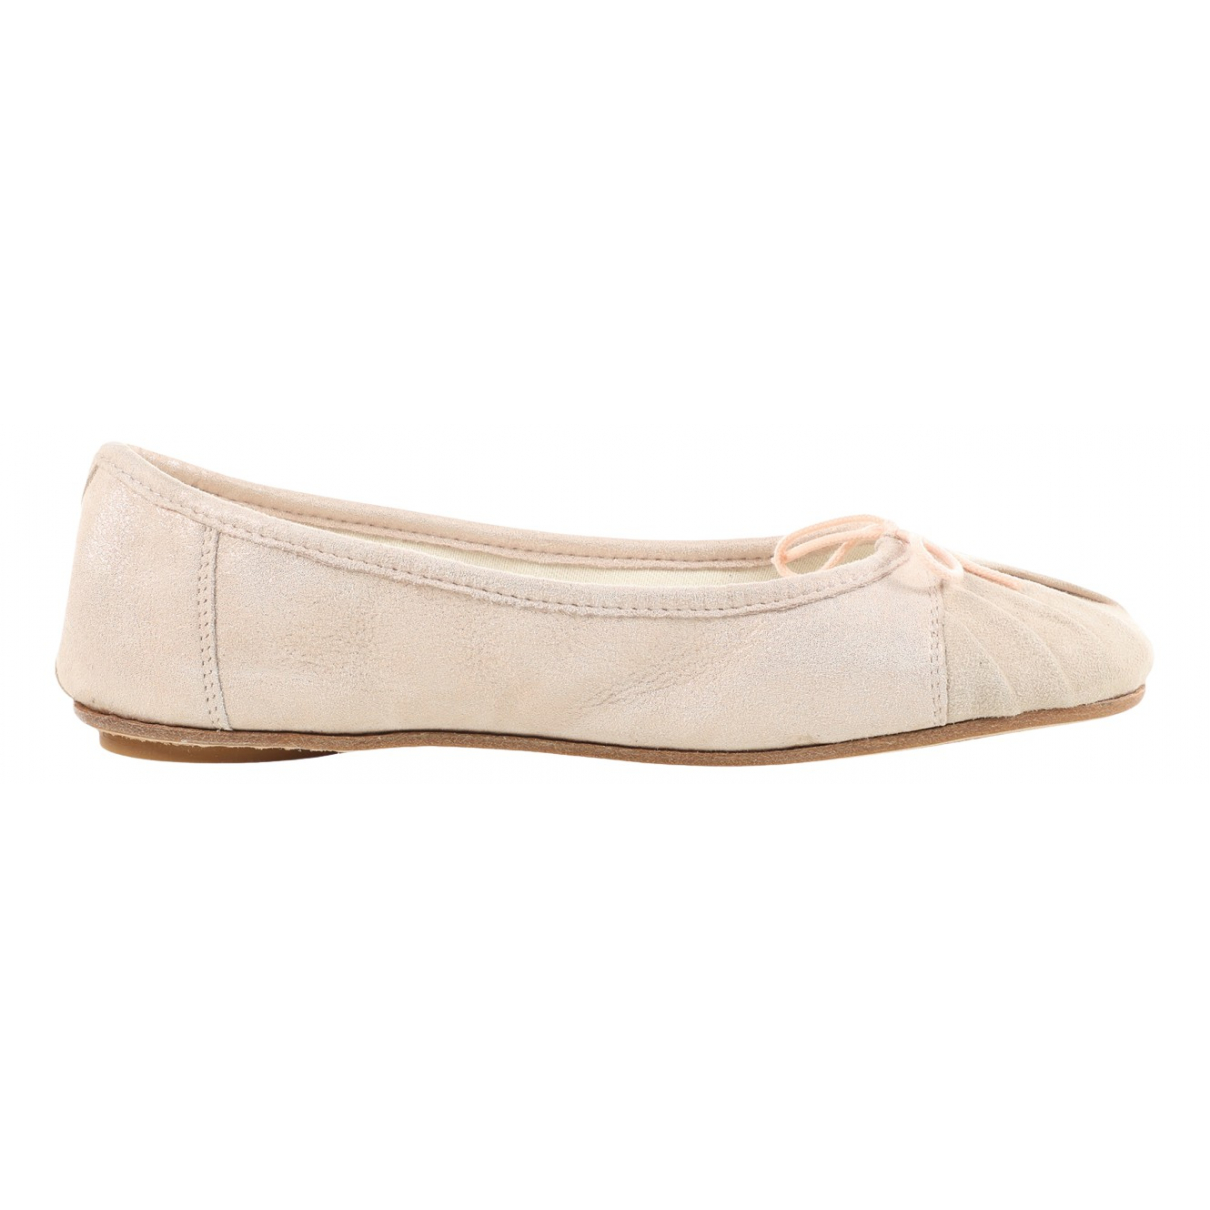 Repetto \N Pink Suede Ballet flats for Women 37 EU